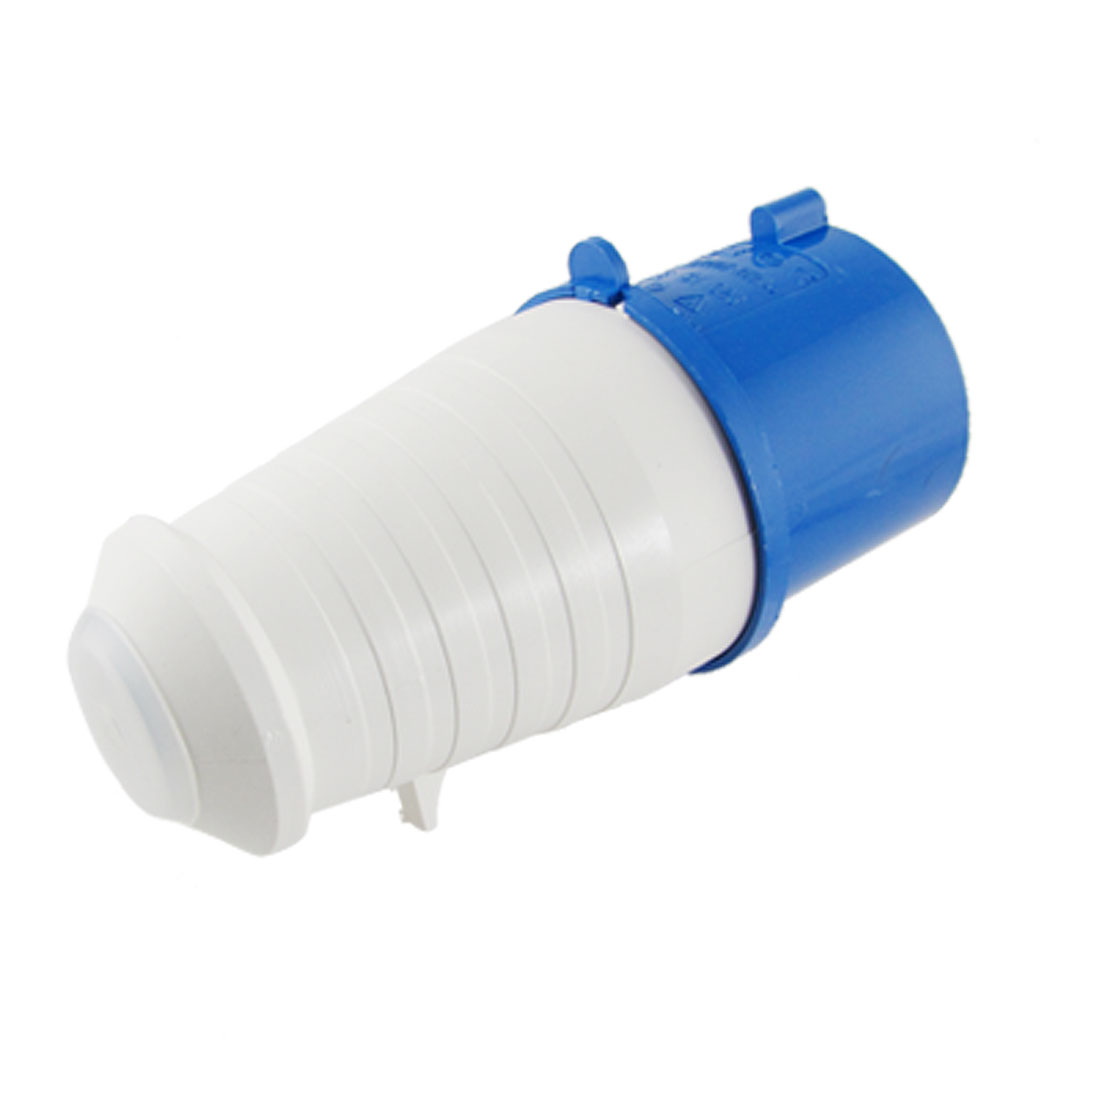 Blue White AC 220-250V 32A IP44 IEC309-1 IEC309-2 Industrial Plug